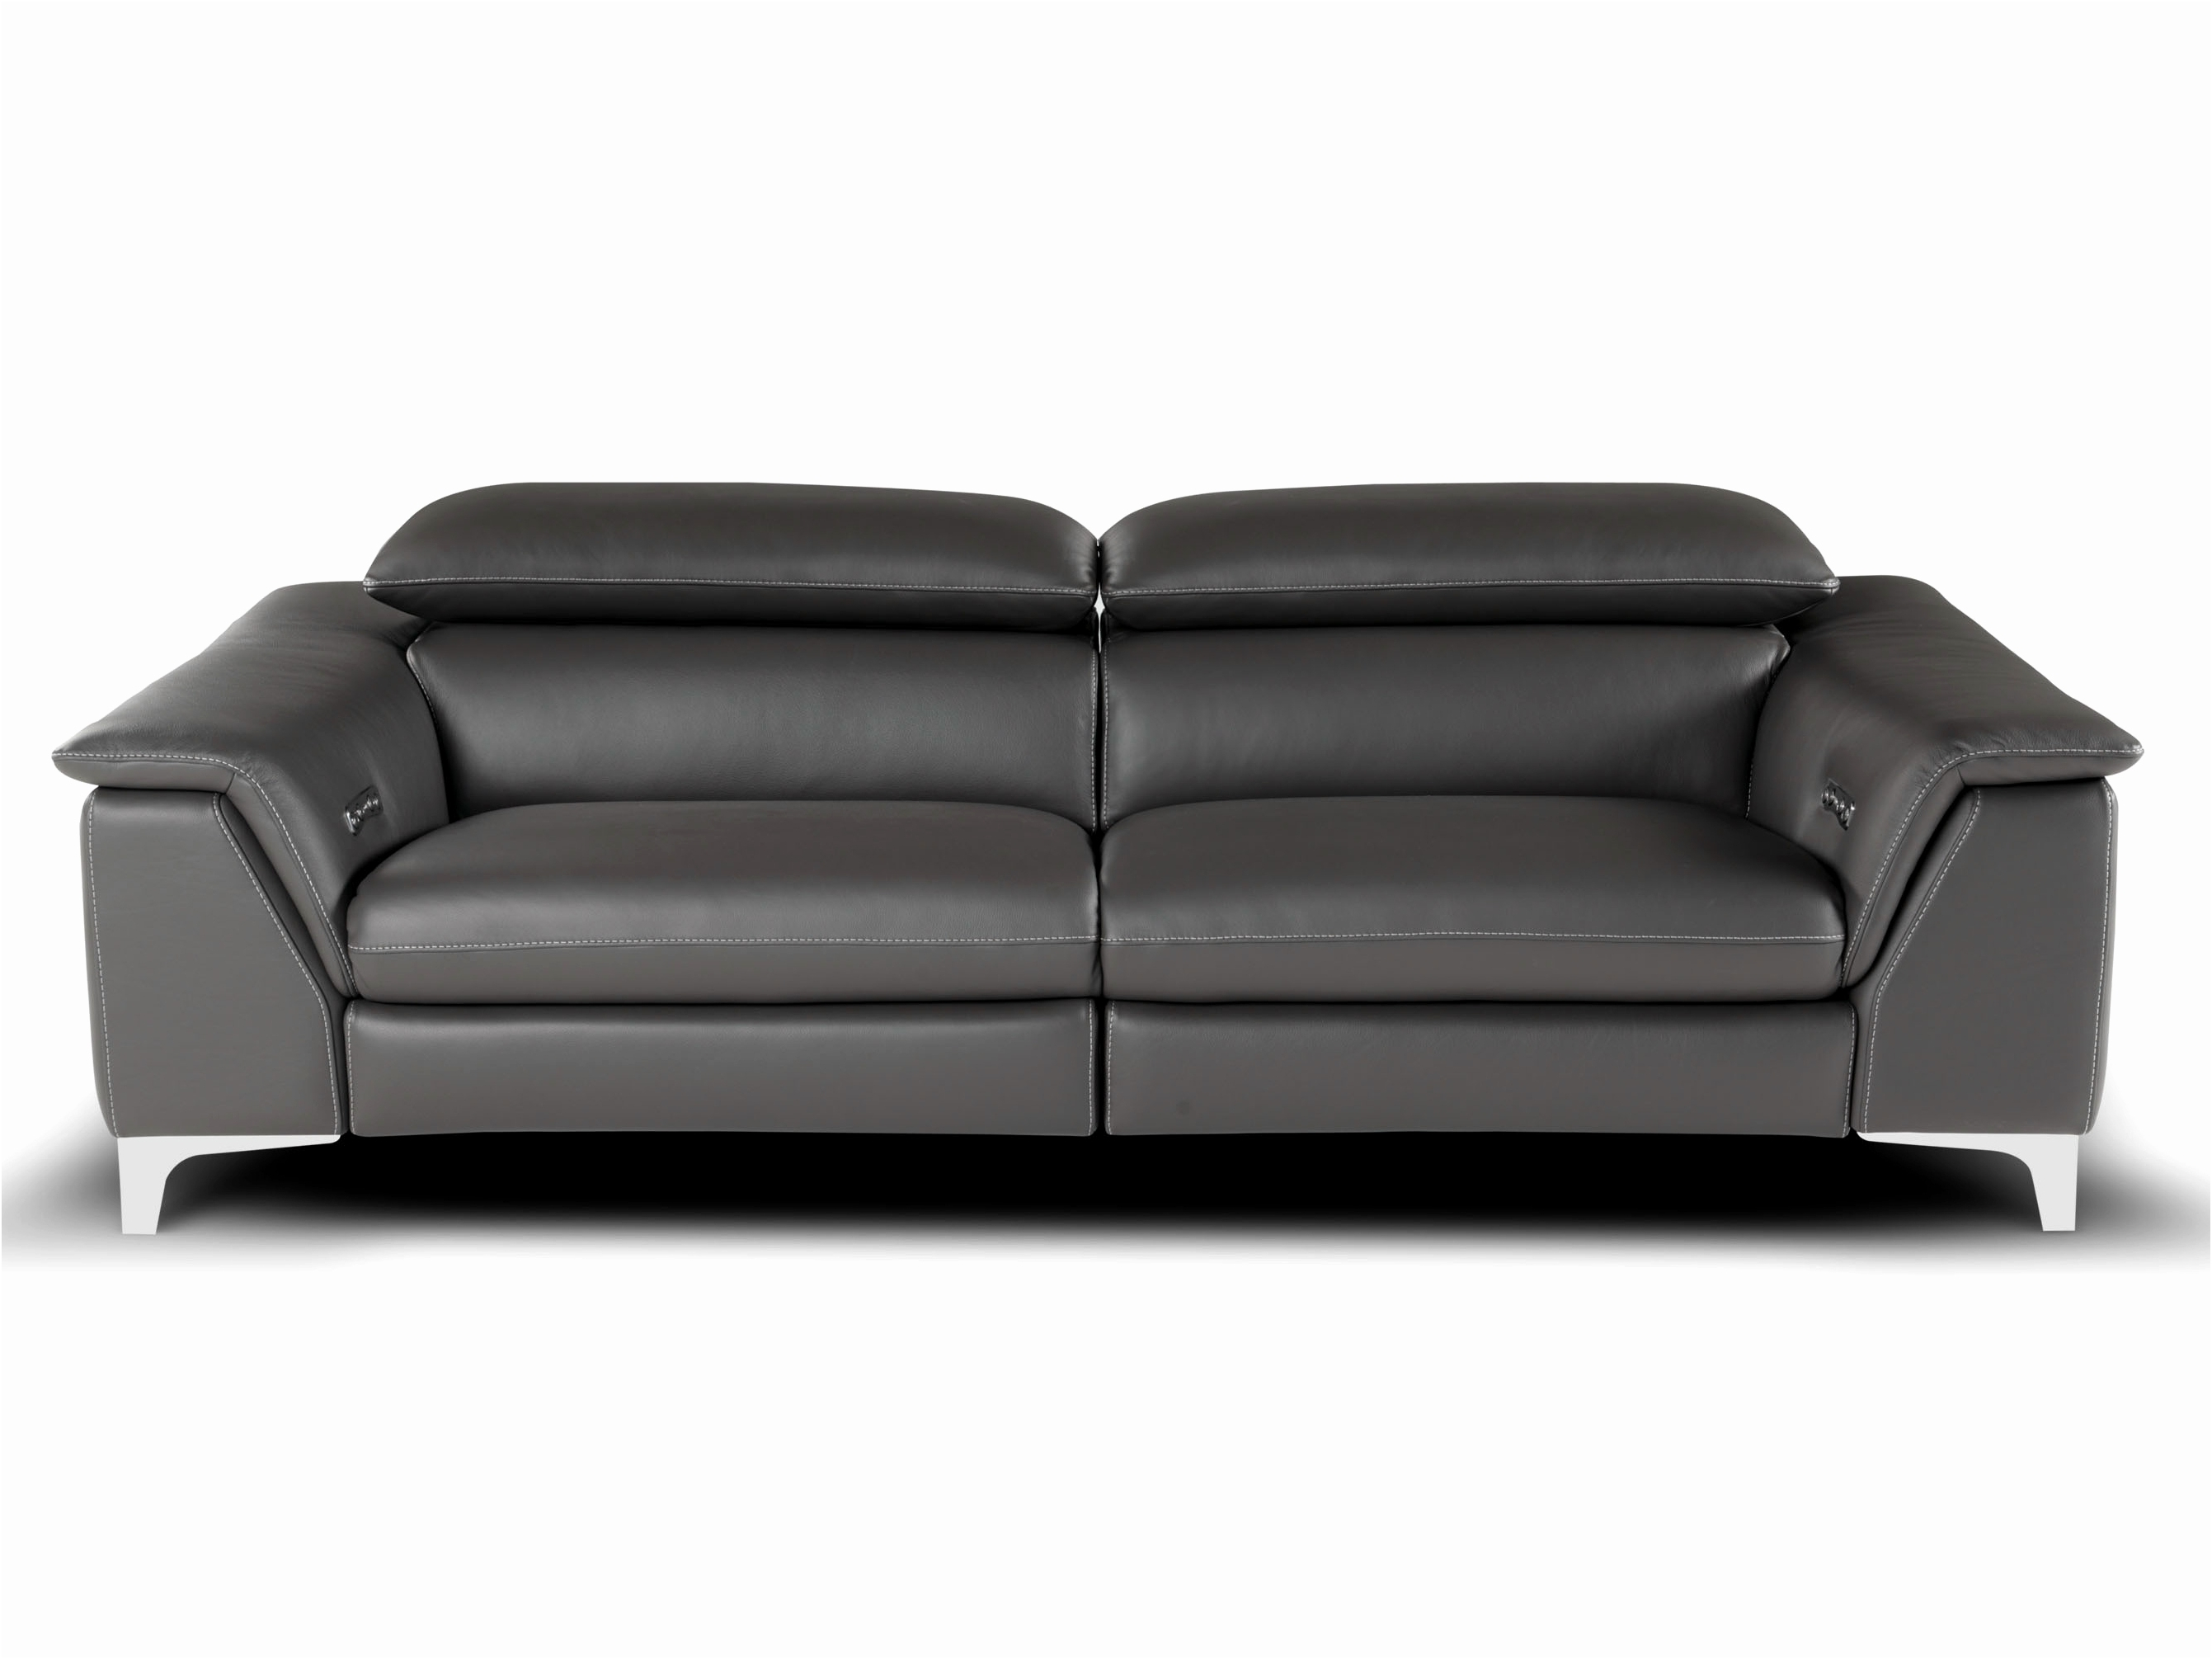 Berkline Sofas With Regard To Current Unique Berkline Leather Sofa Elegant – Intuisiblog (View 19 of 20)